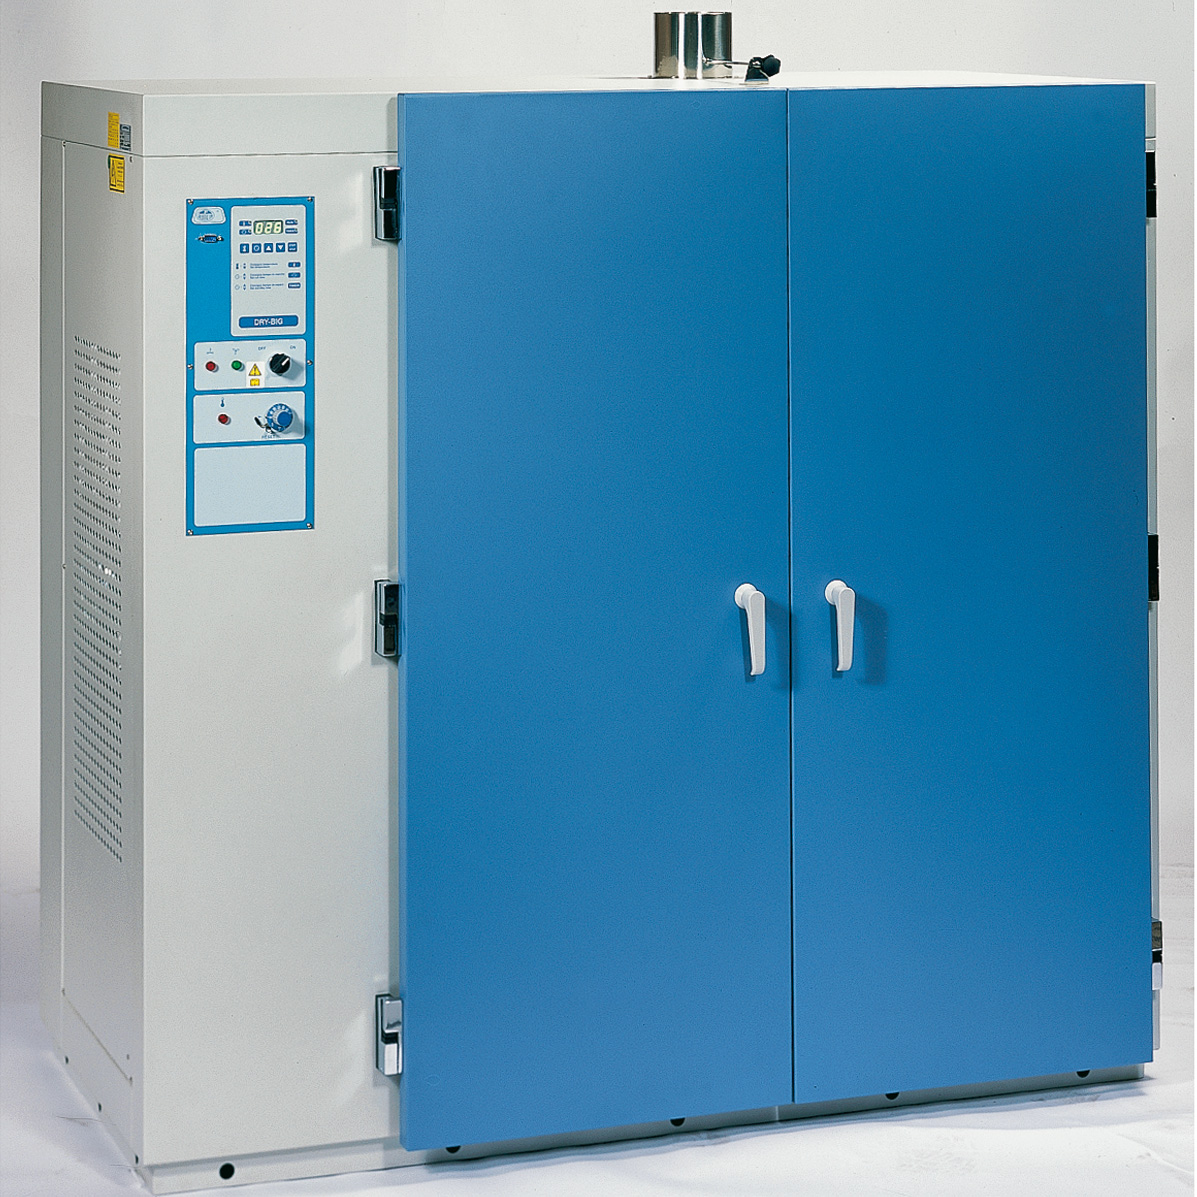 Drying and sterilization ovens with fan assisted circulation